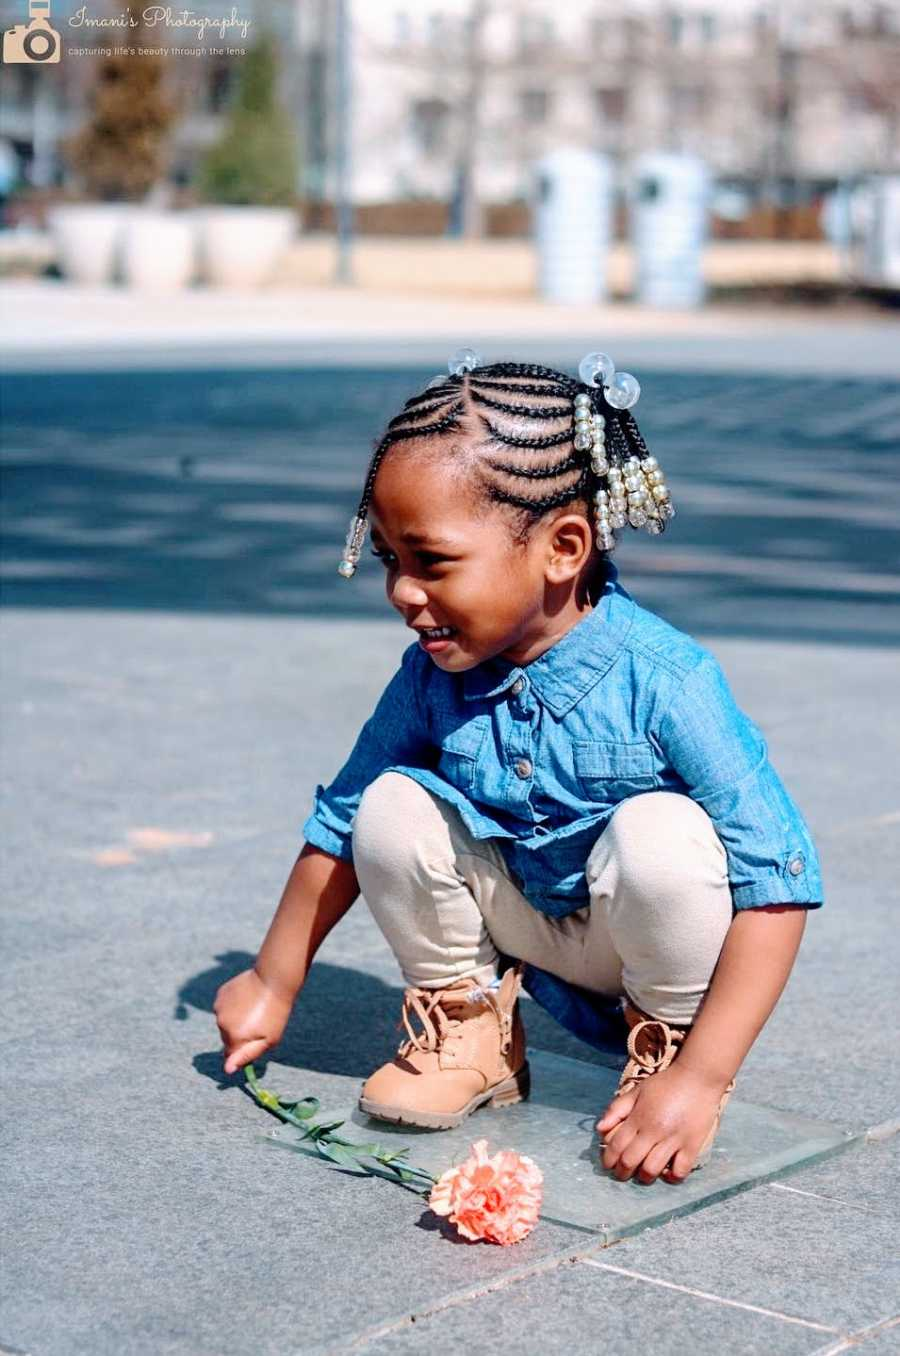 A little girl squats down holding a flower in her hand